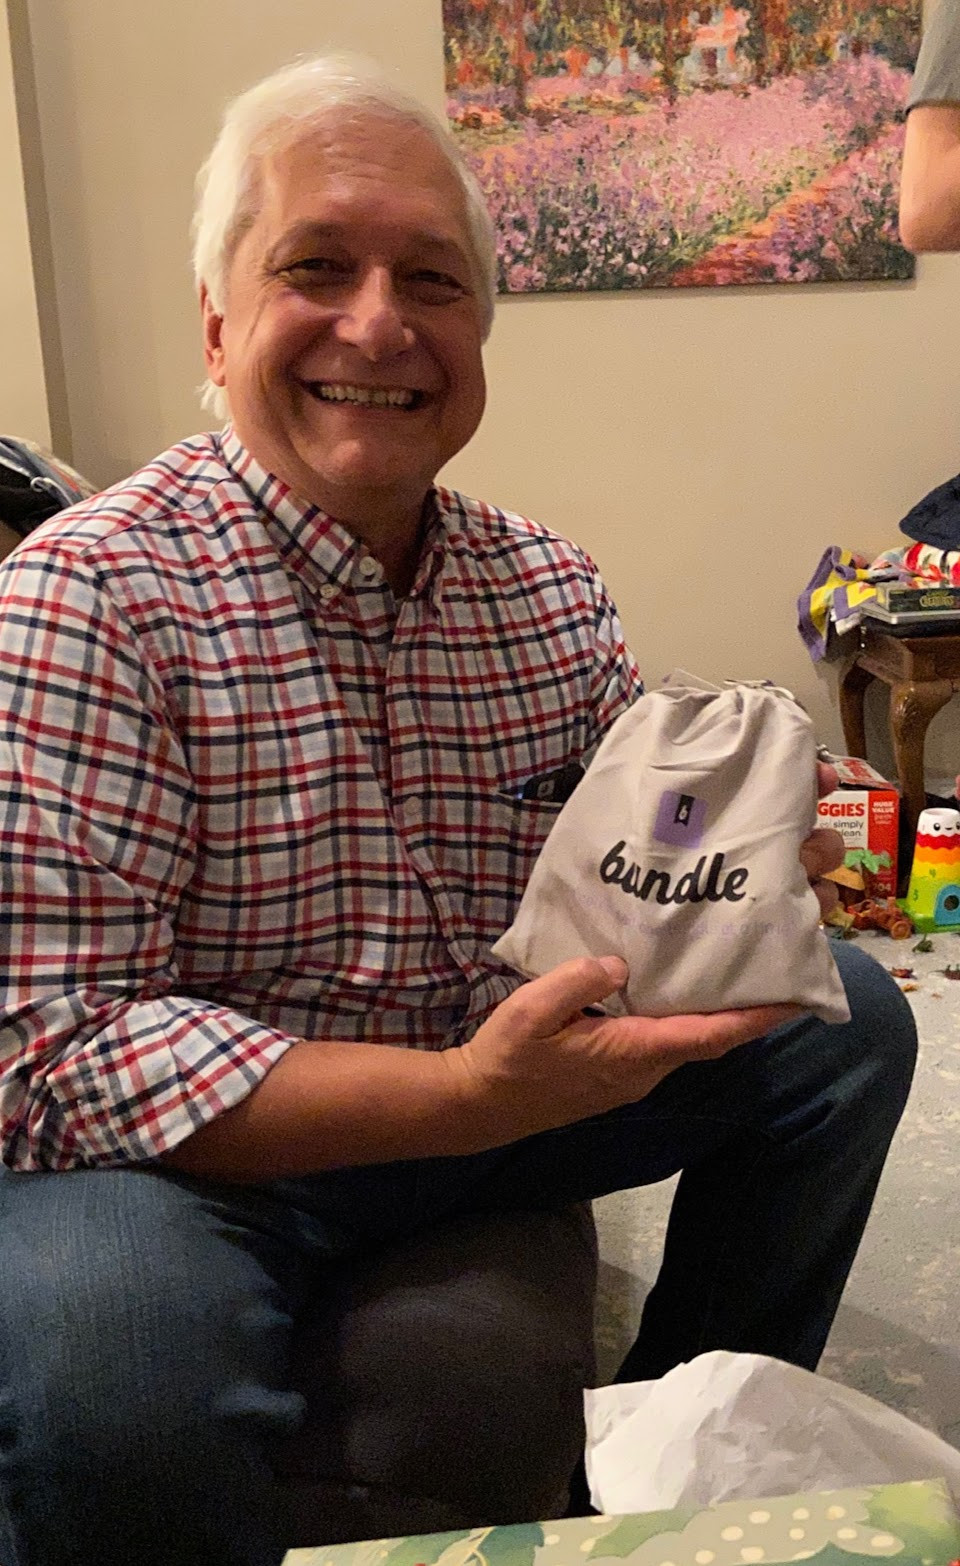 Dad Bort excitedly holdiing the personalized Family Bundle with a huge smile on his face.